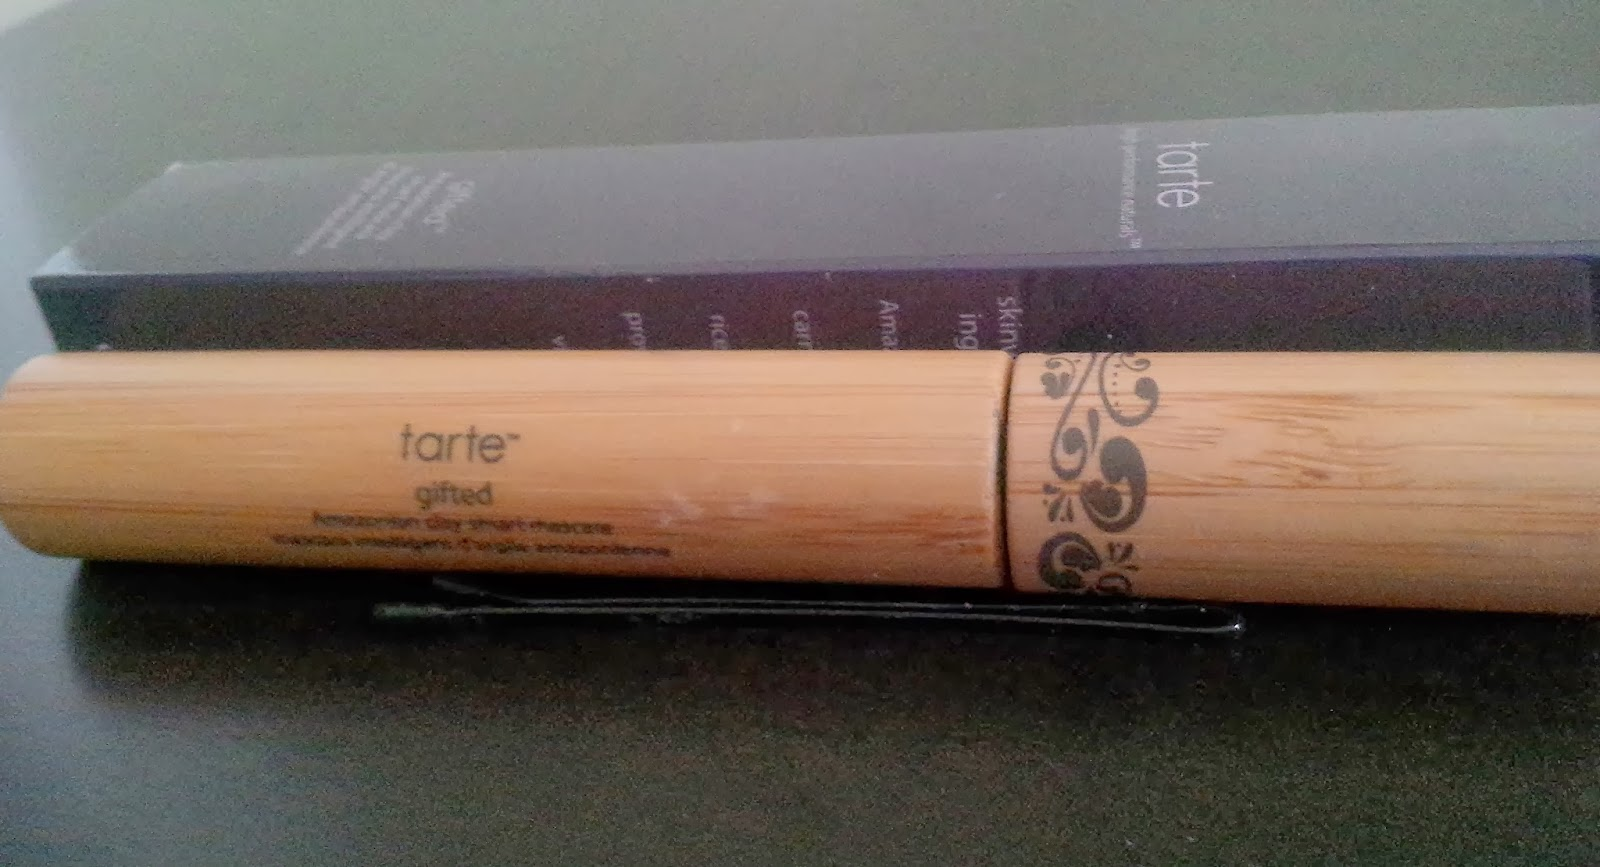 natural beauty tarte gifted amazonian clay smart mascara review